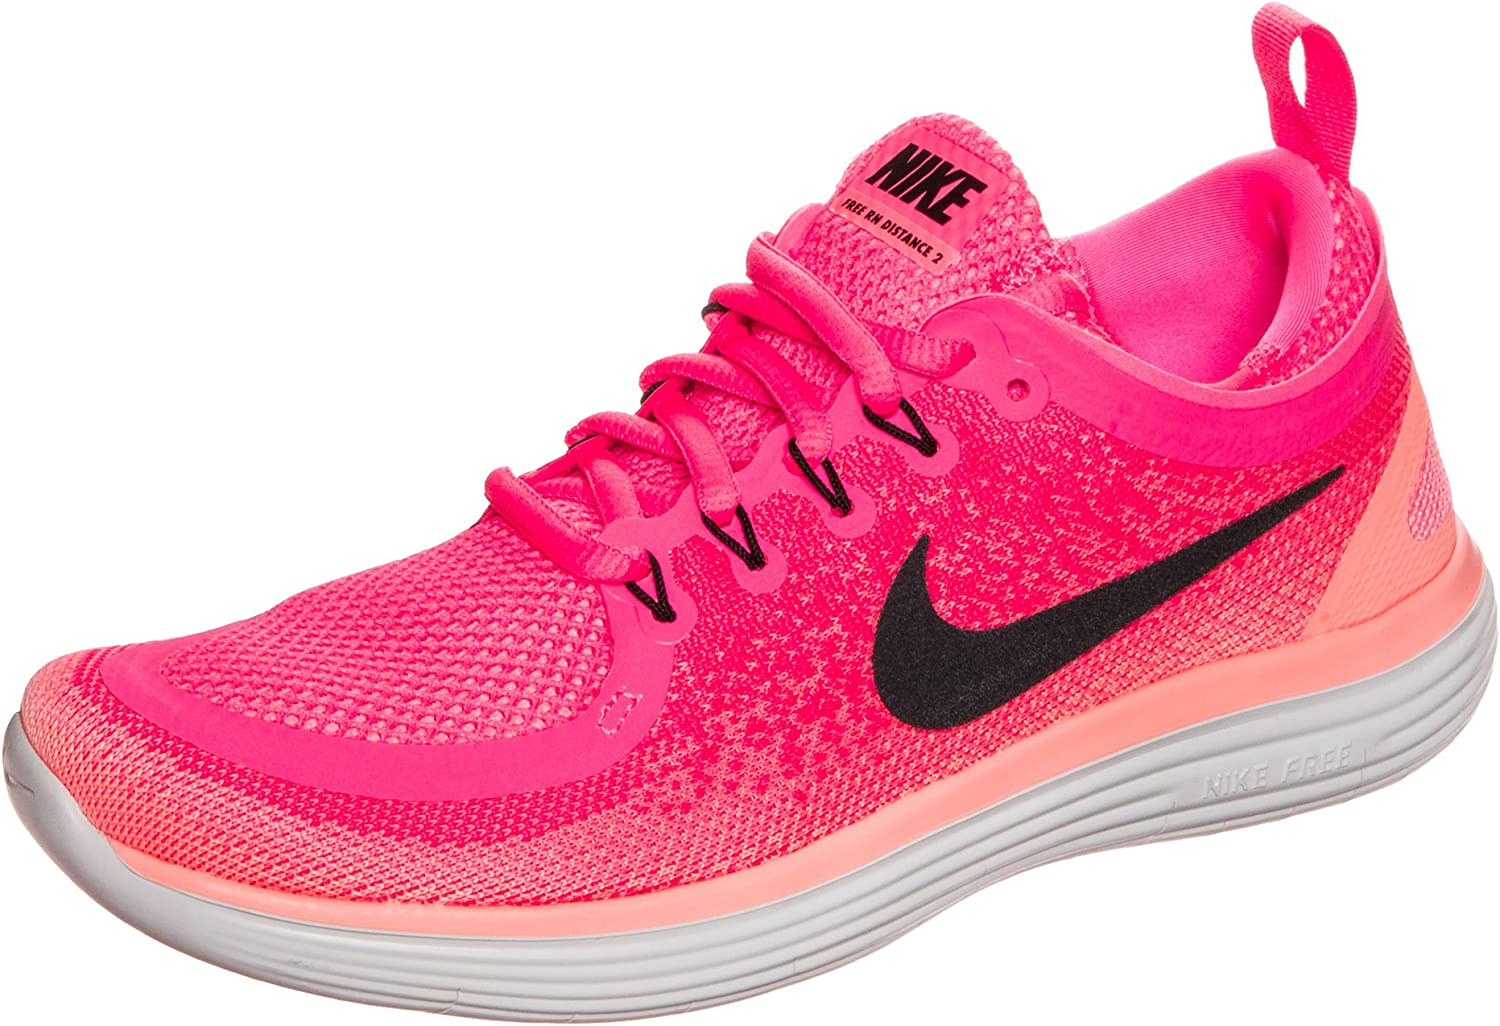 Nike WOMENS FREE RN DISTANCE 2 RUNNING SHOE W,7: Amazon.es: Deportes y aire libre